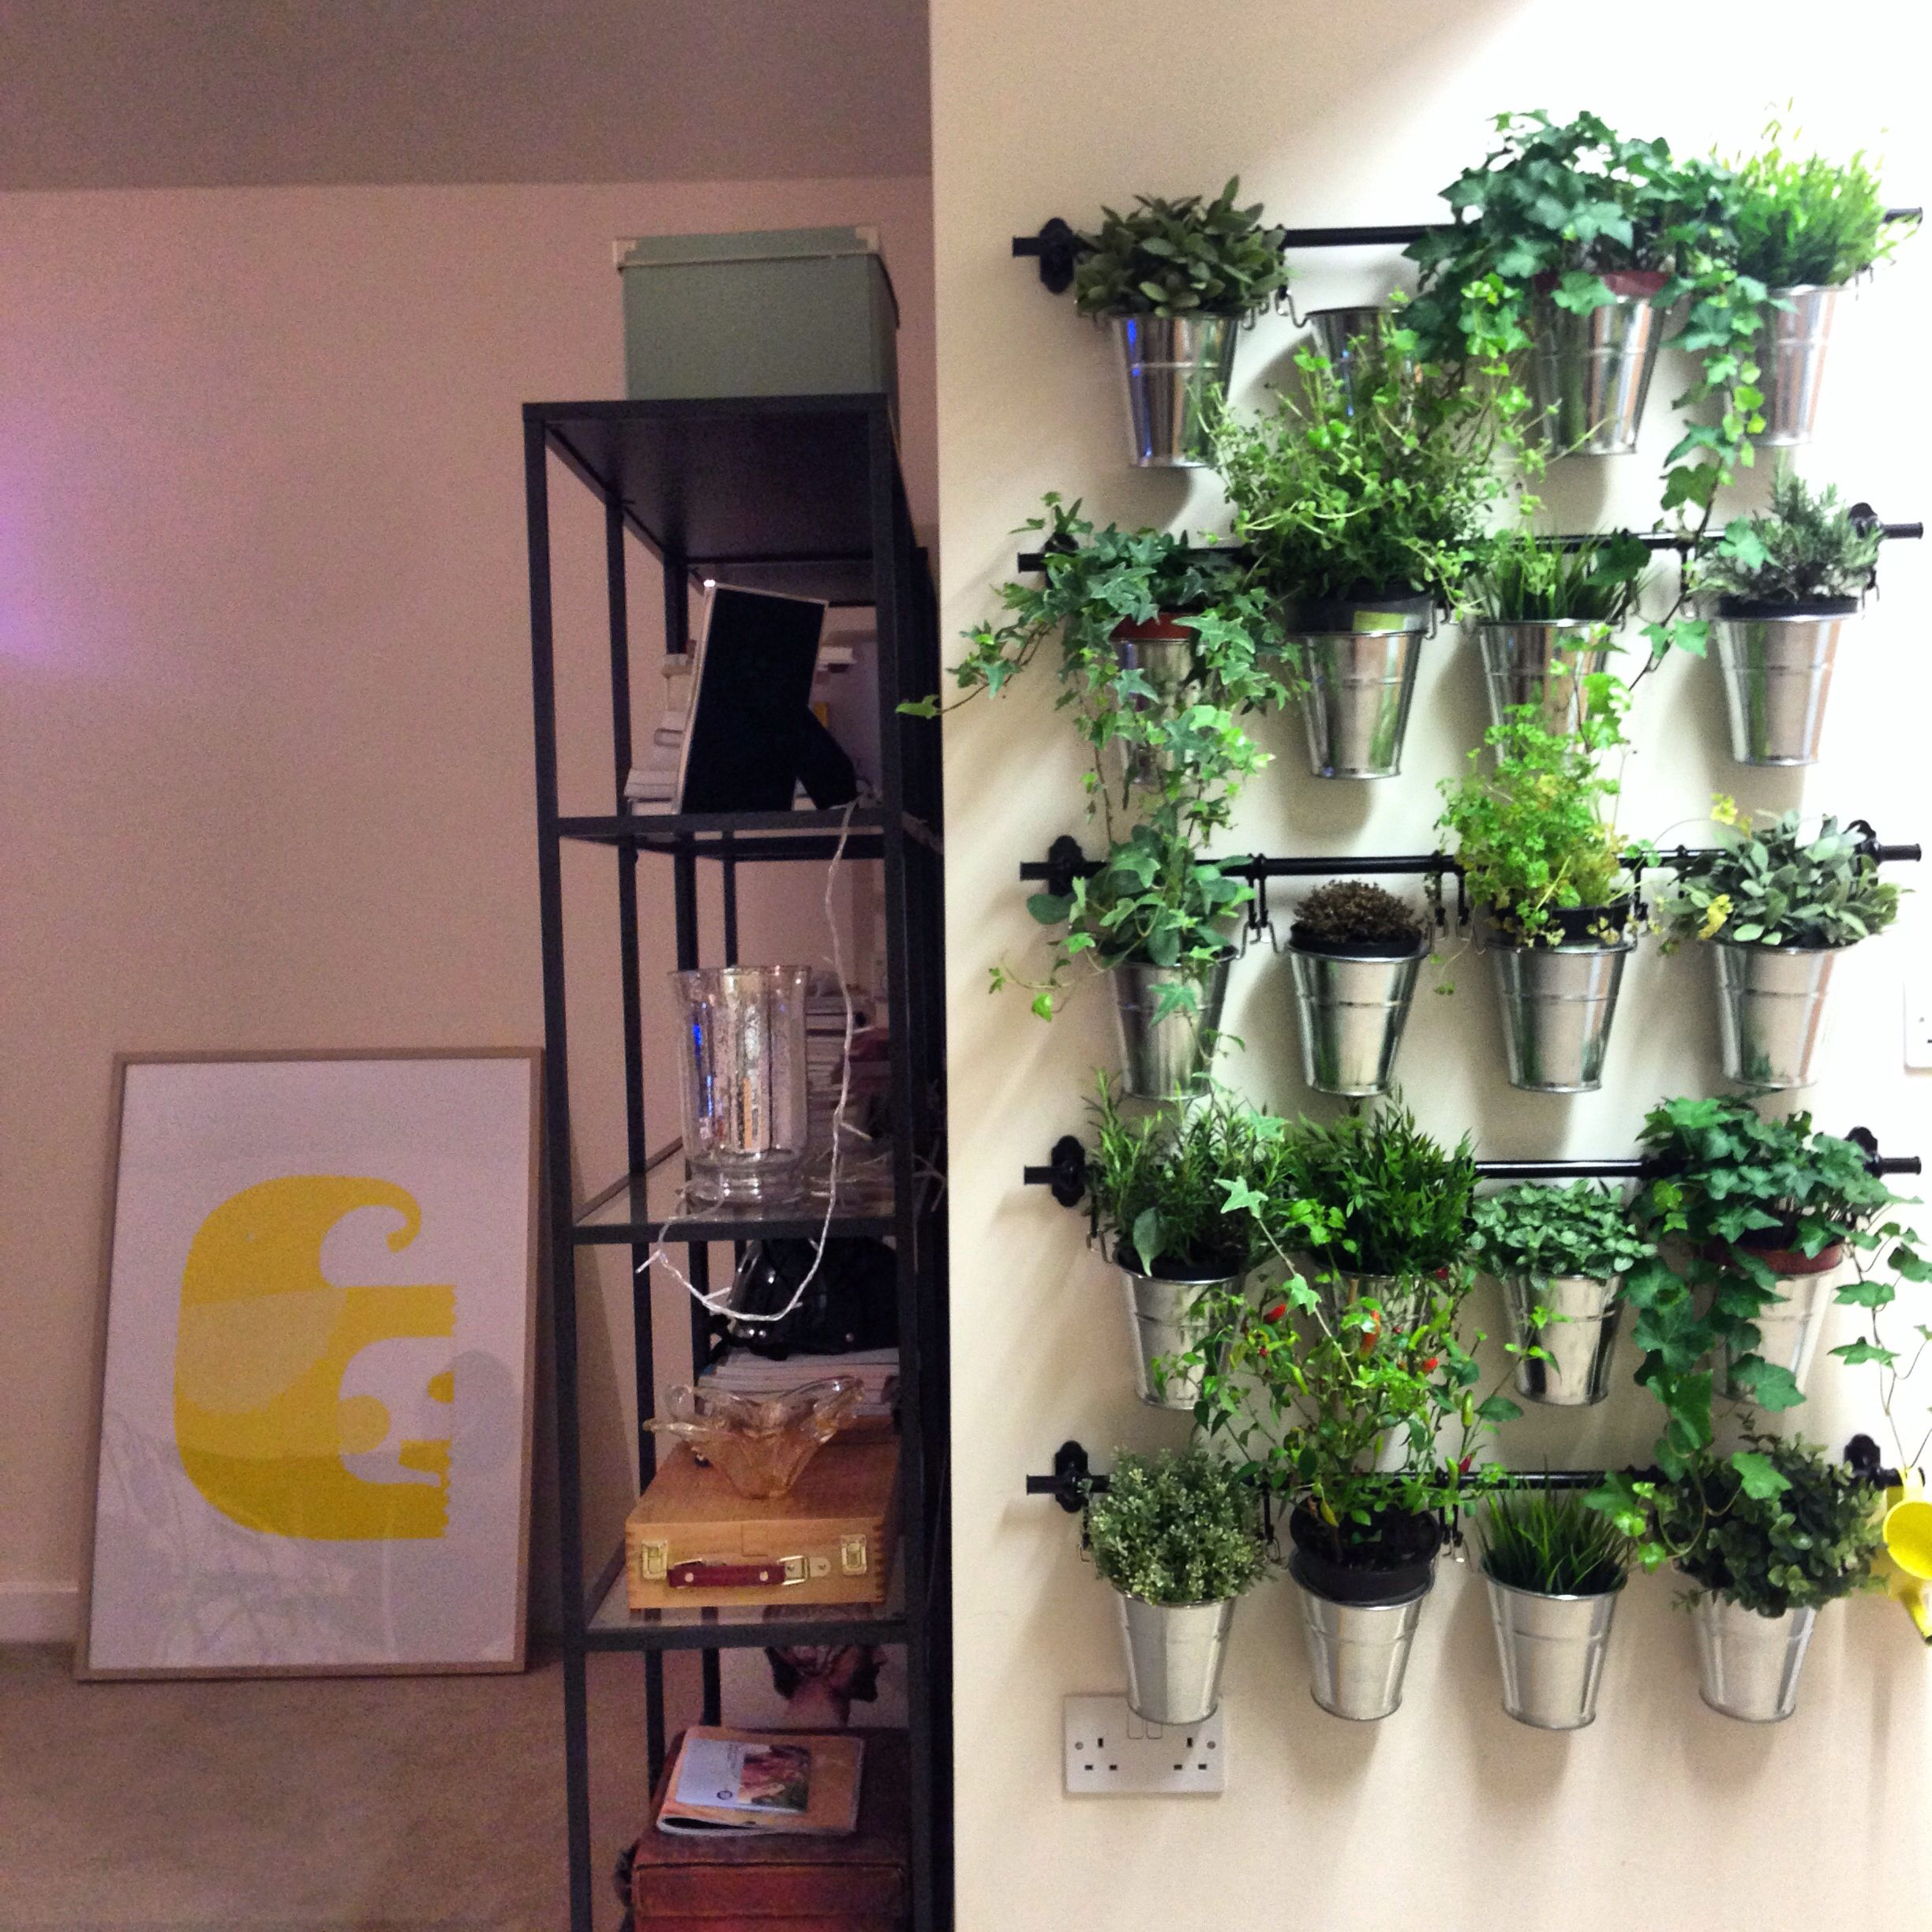 Ikea Herb Planters Herb Garden Out Of Ikea Plant Pots And Kitchen Rails Diy